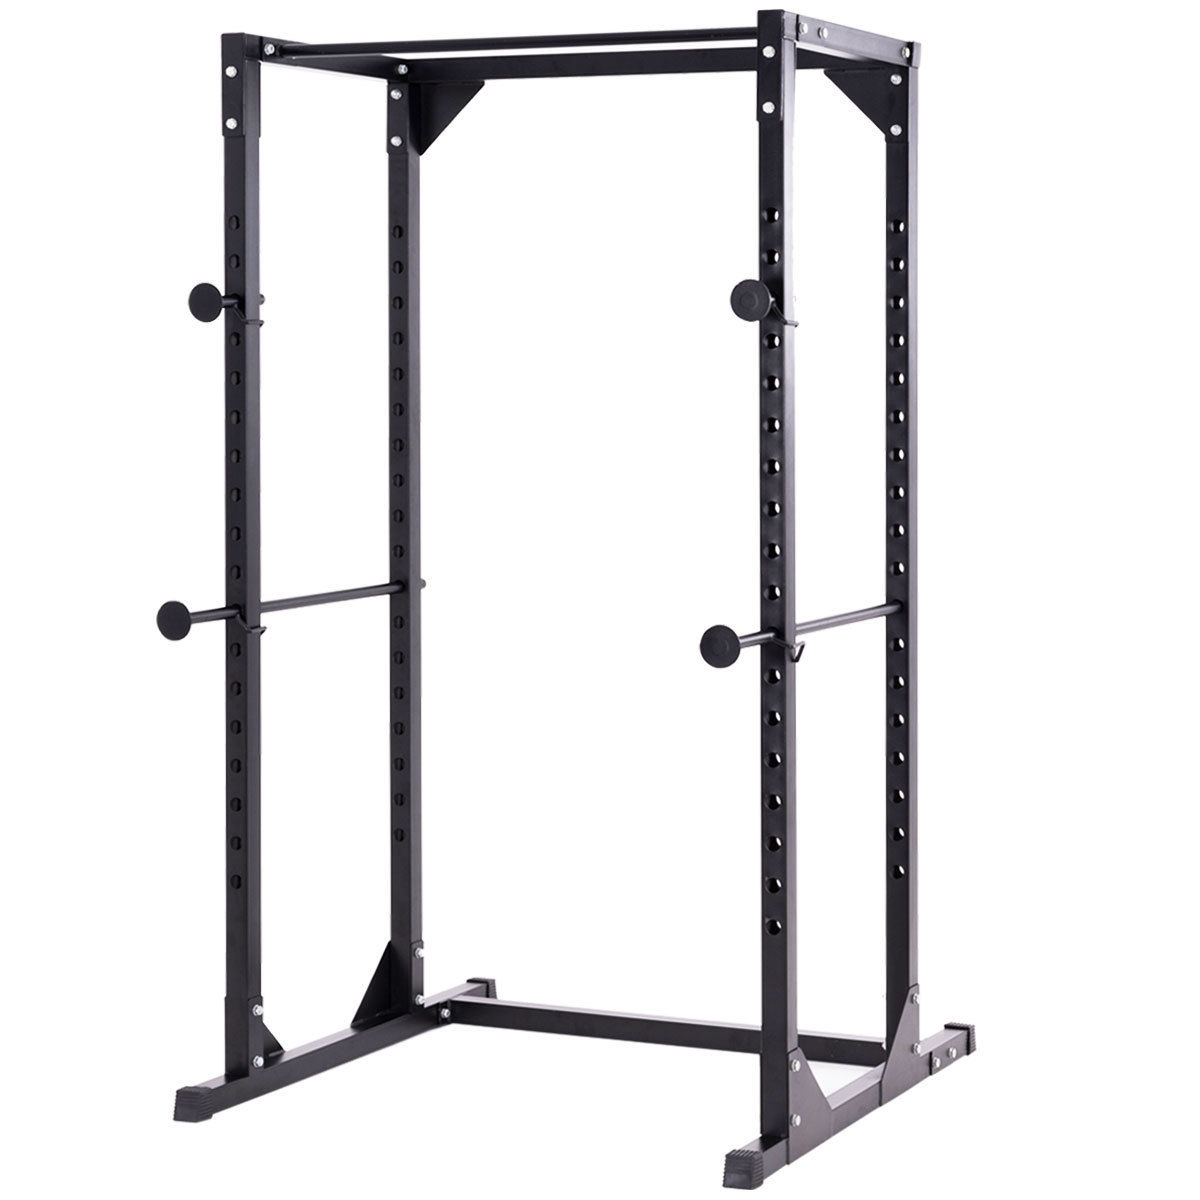 Costway Adjustable Dumbbell Rack Cage Chin up Squat Stand Fitness Strength Traning Gym